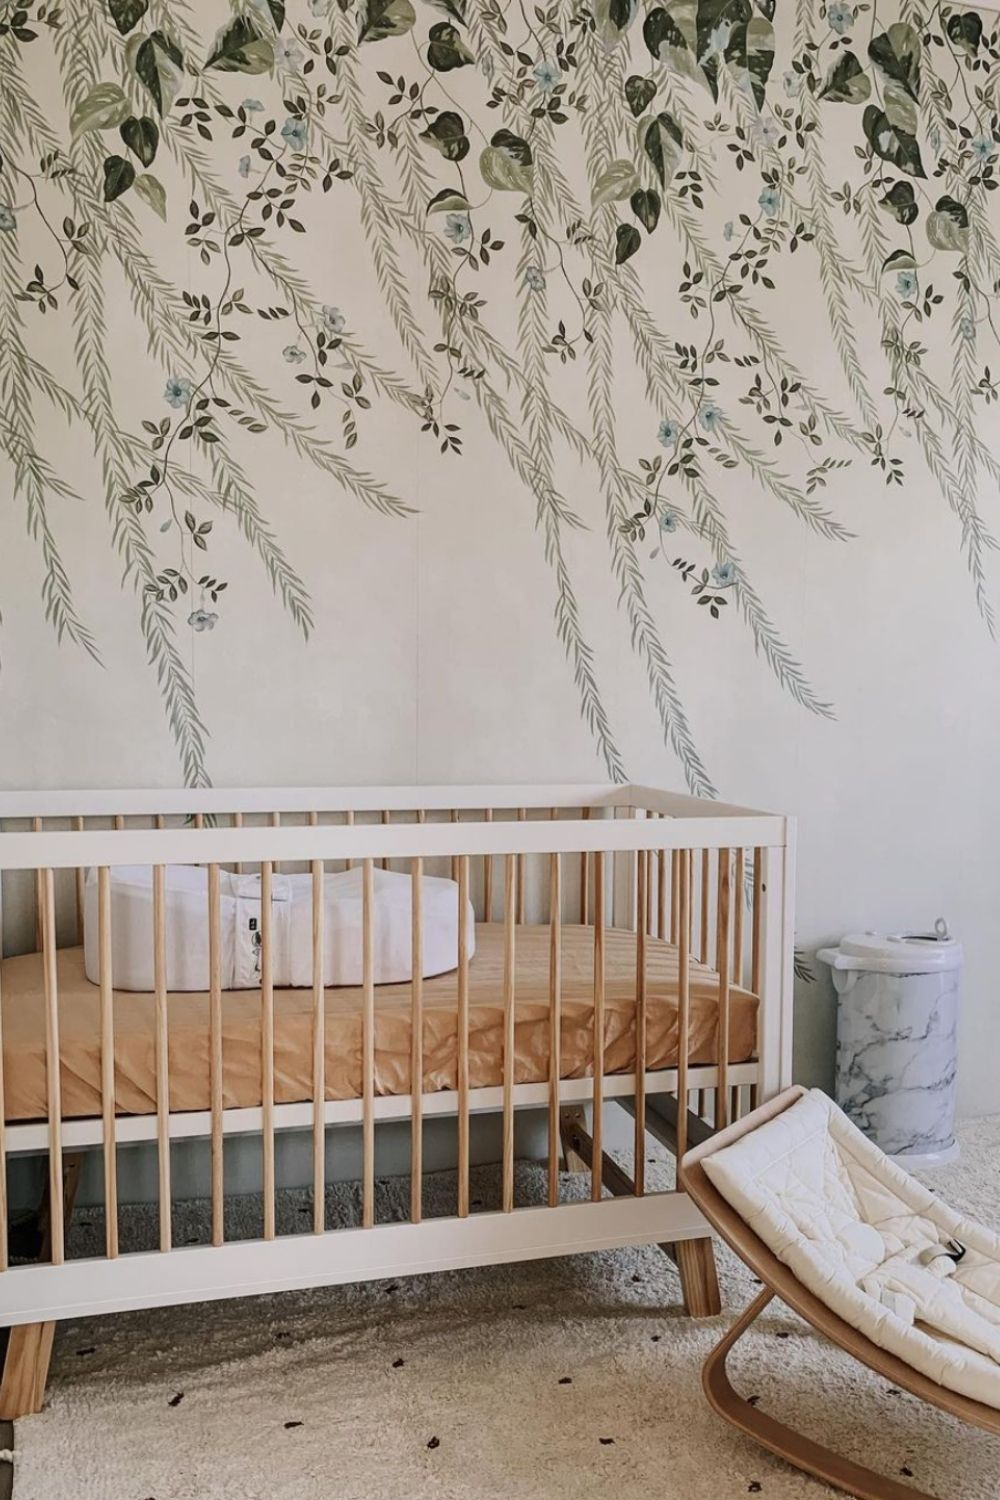 24 Lovely Nursery Room Ideas To Bring Up Your Baby With Taste